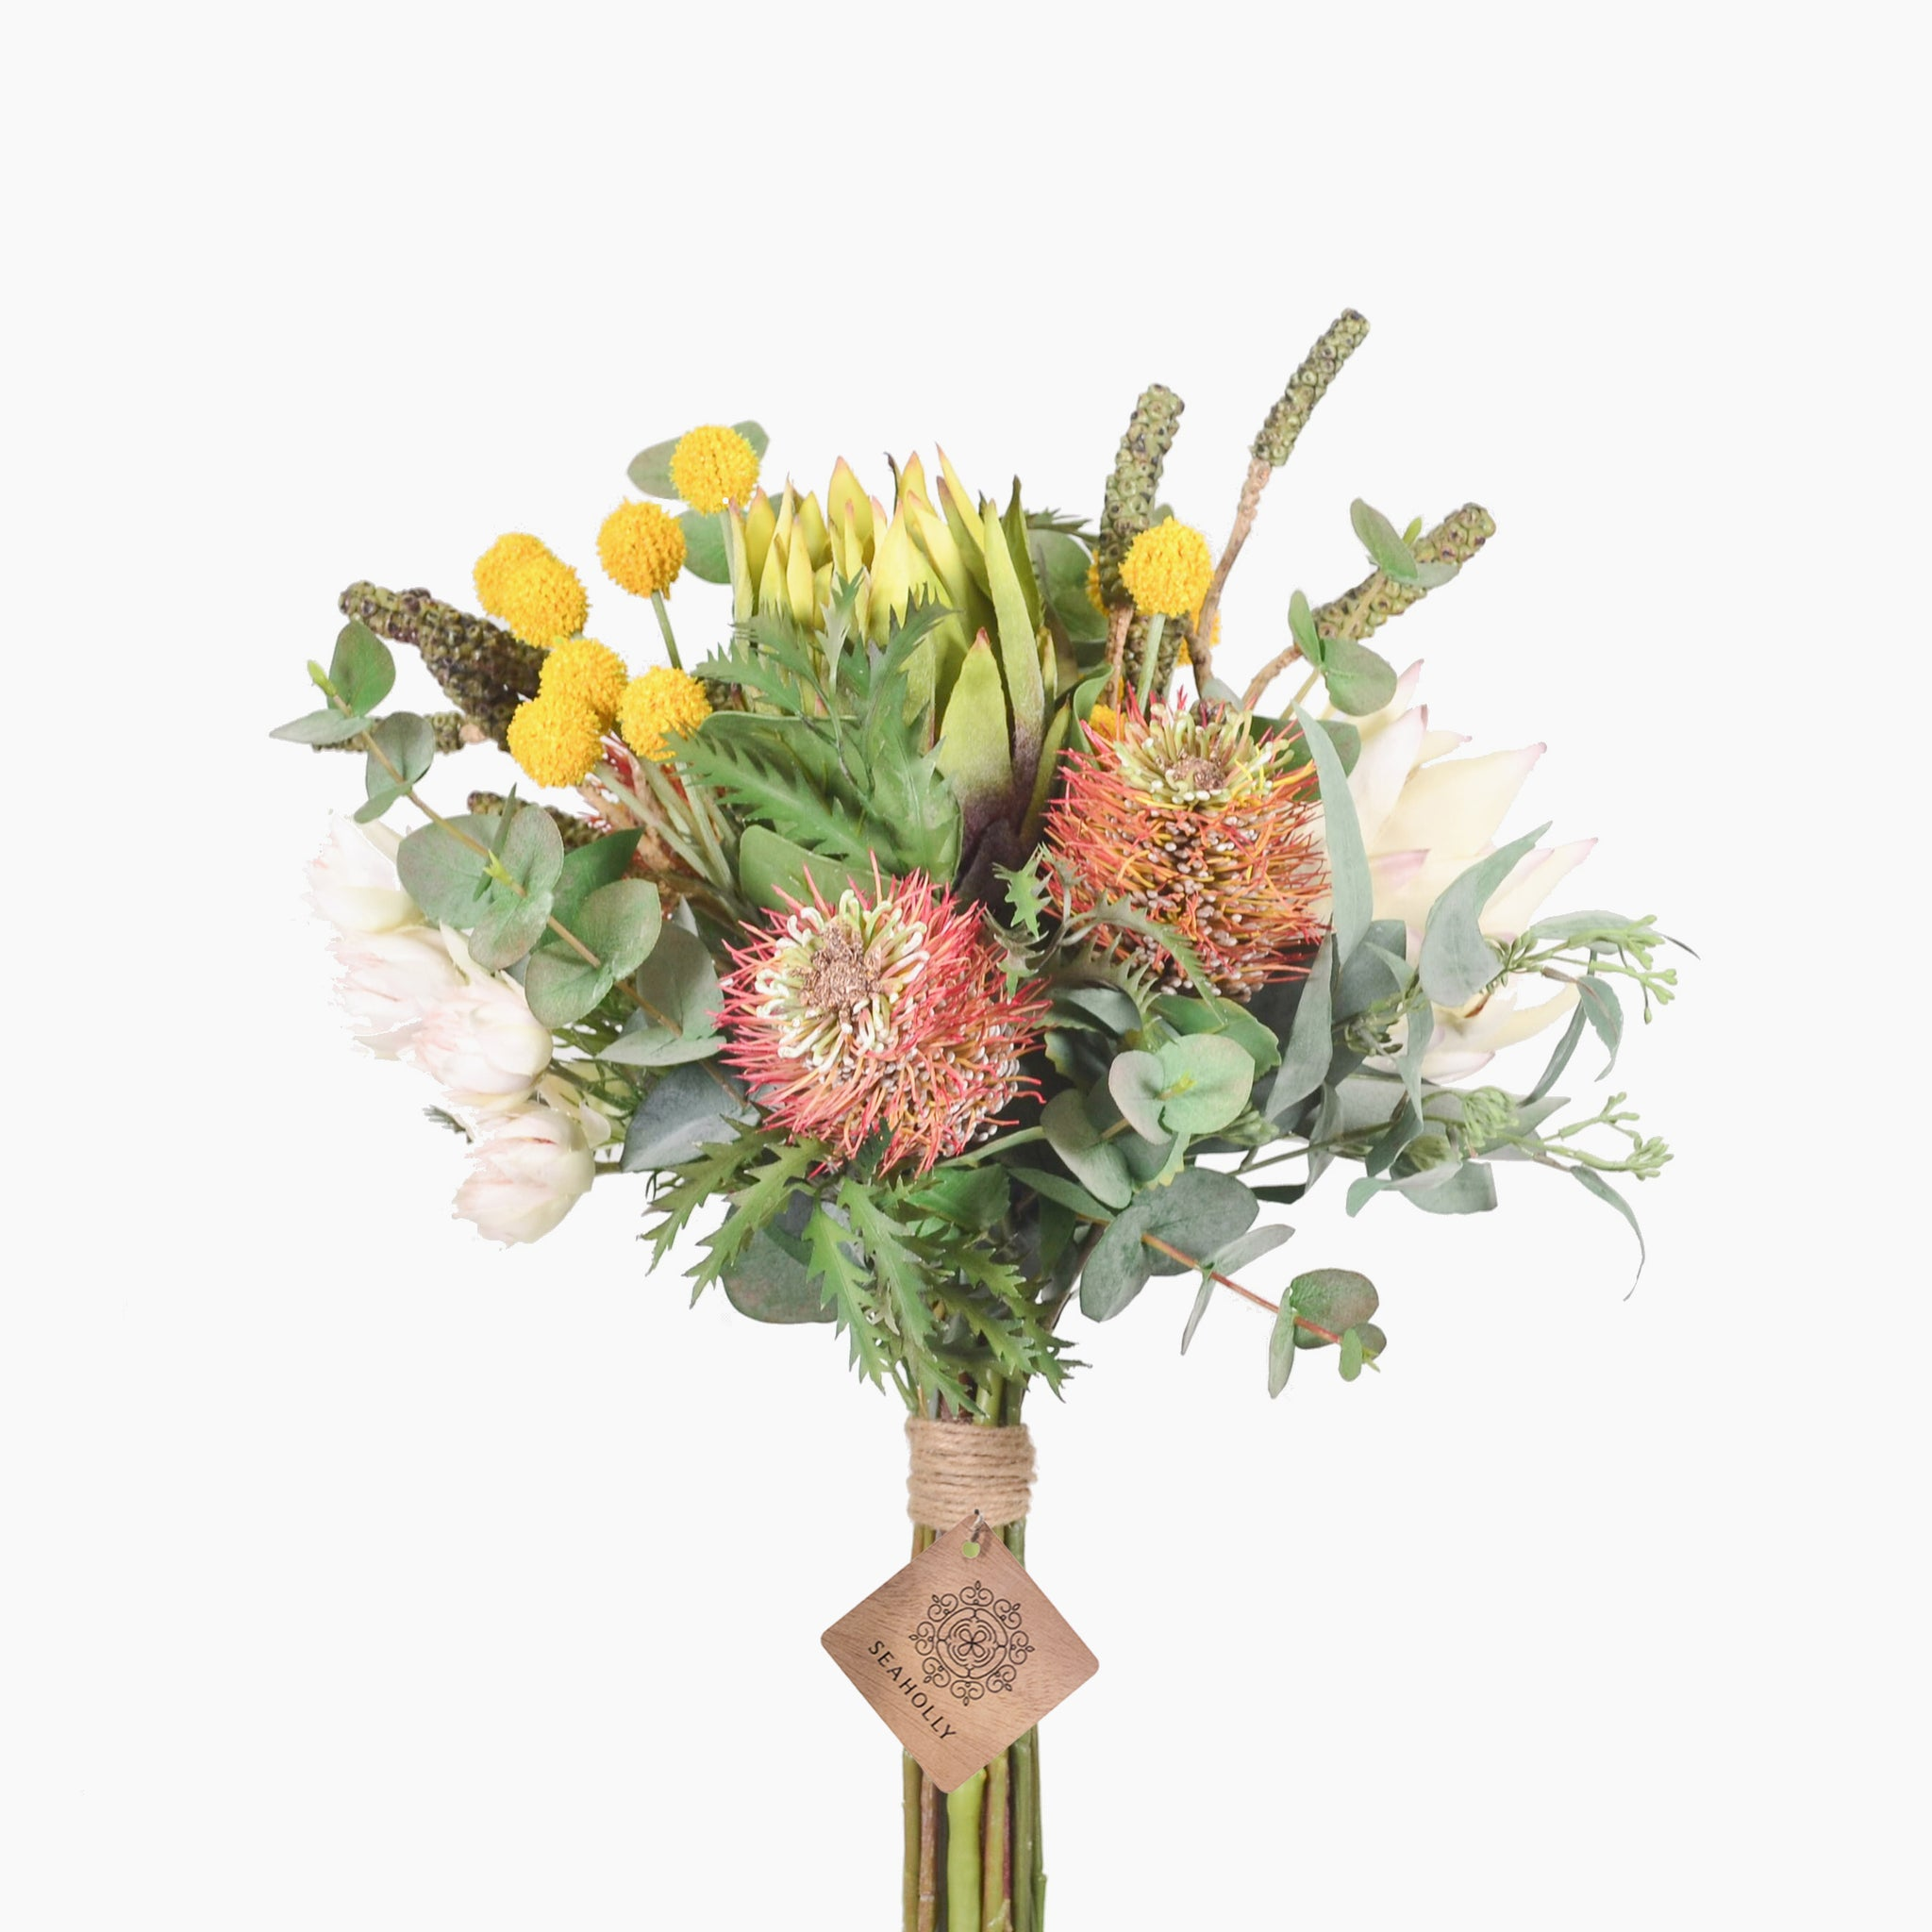 Green and cream protea, leucospermum, bottlebrush pods and billy buttons